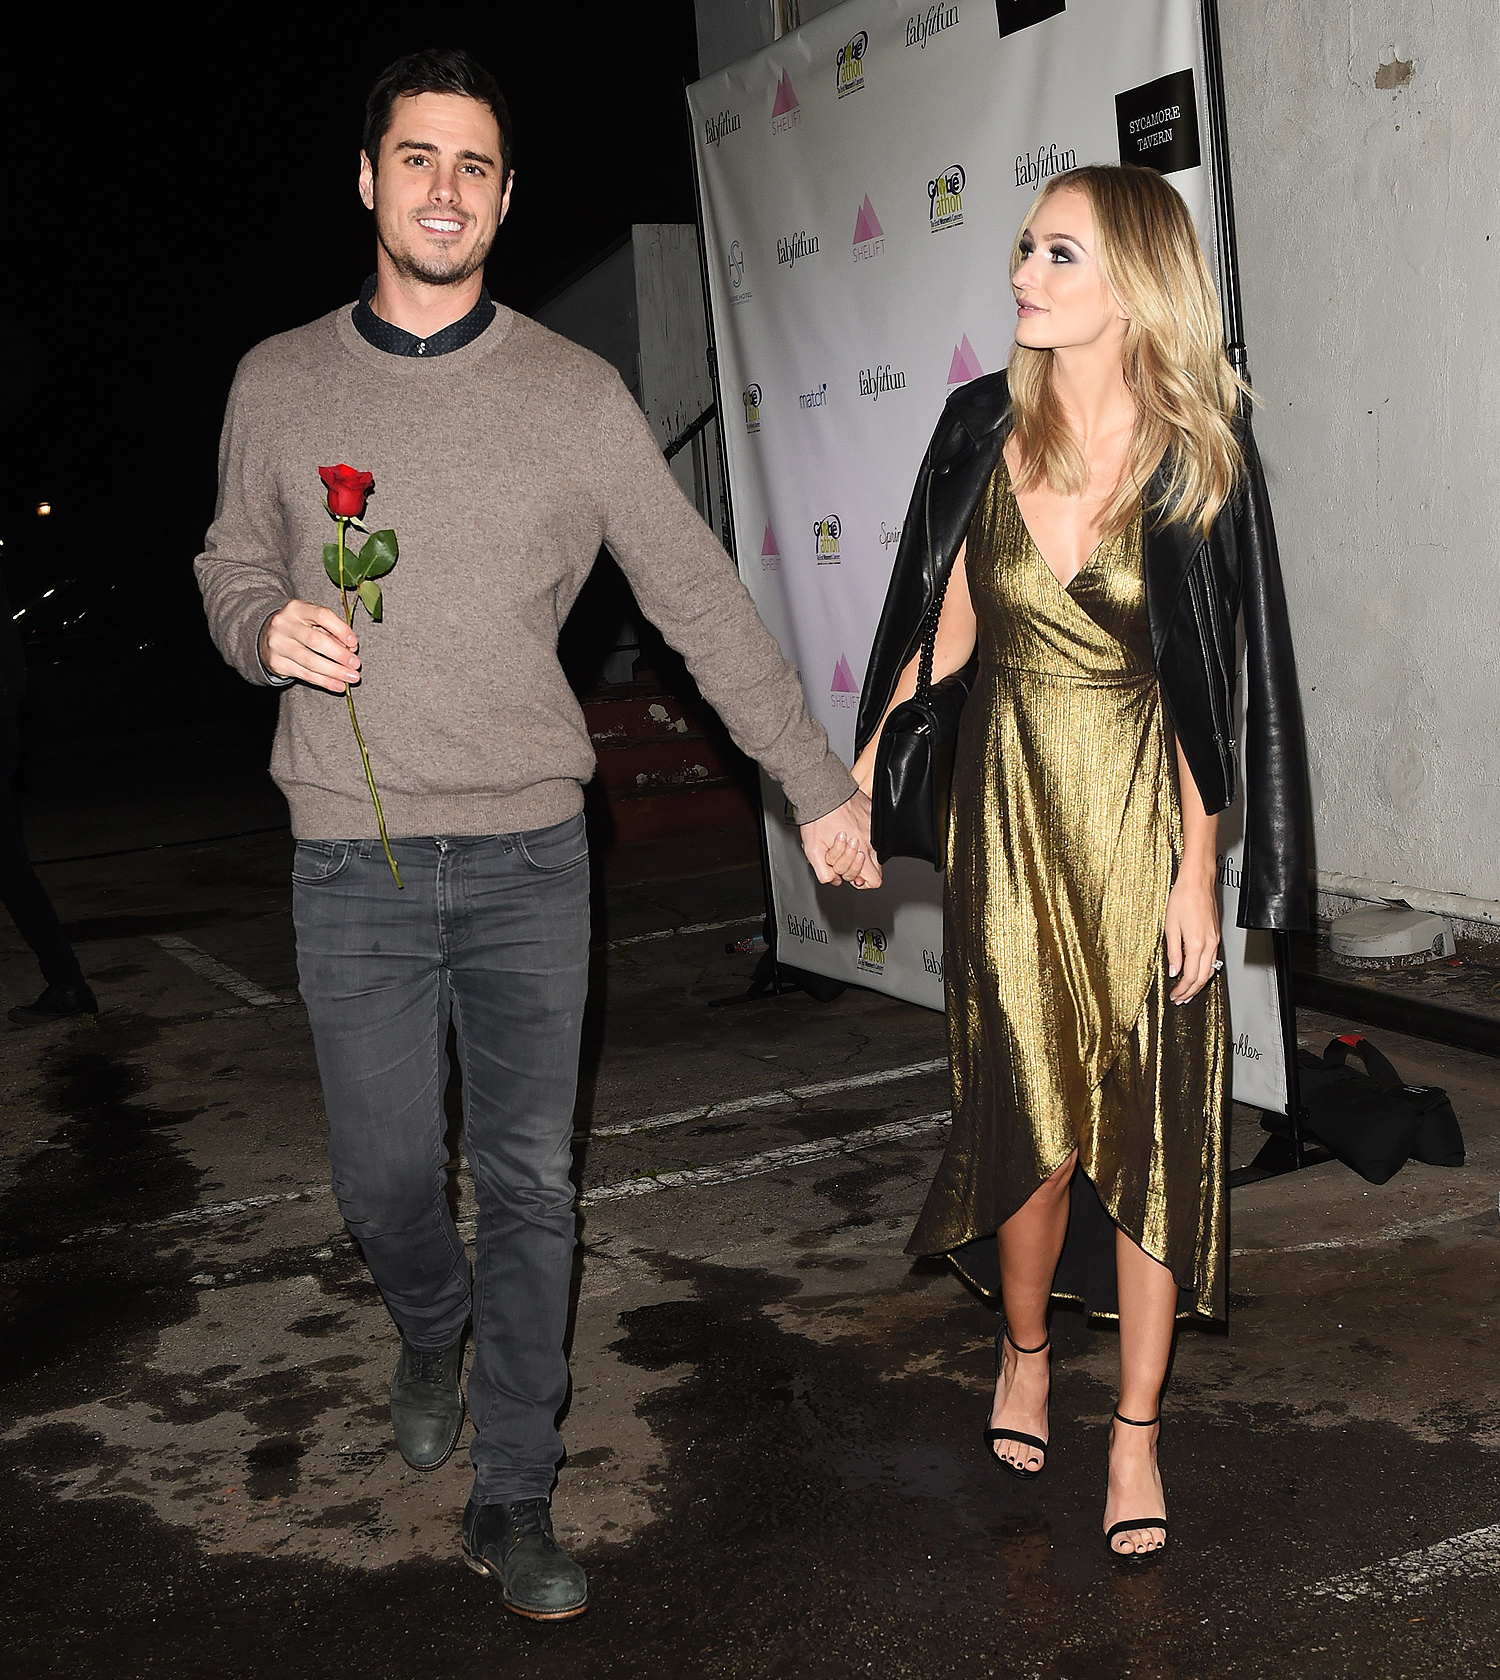 The Bachelor 2017 Premiere Party